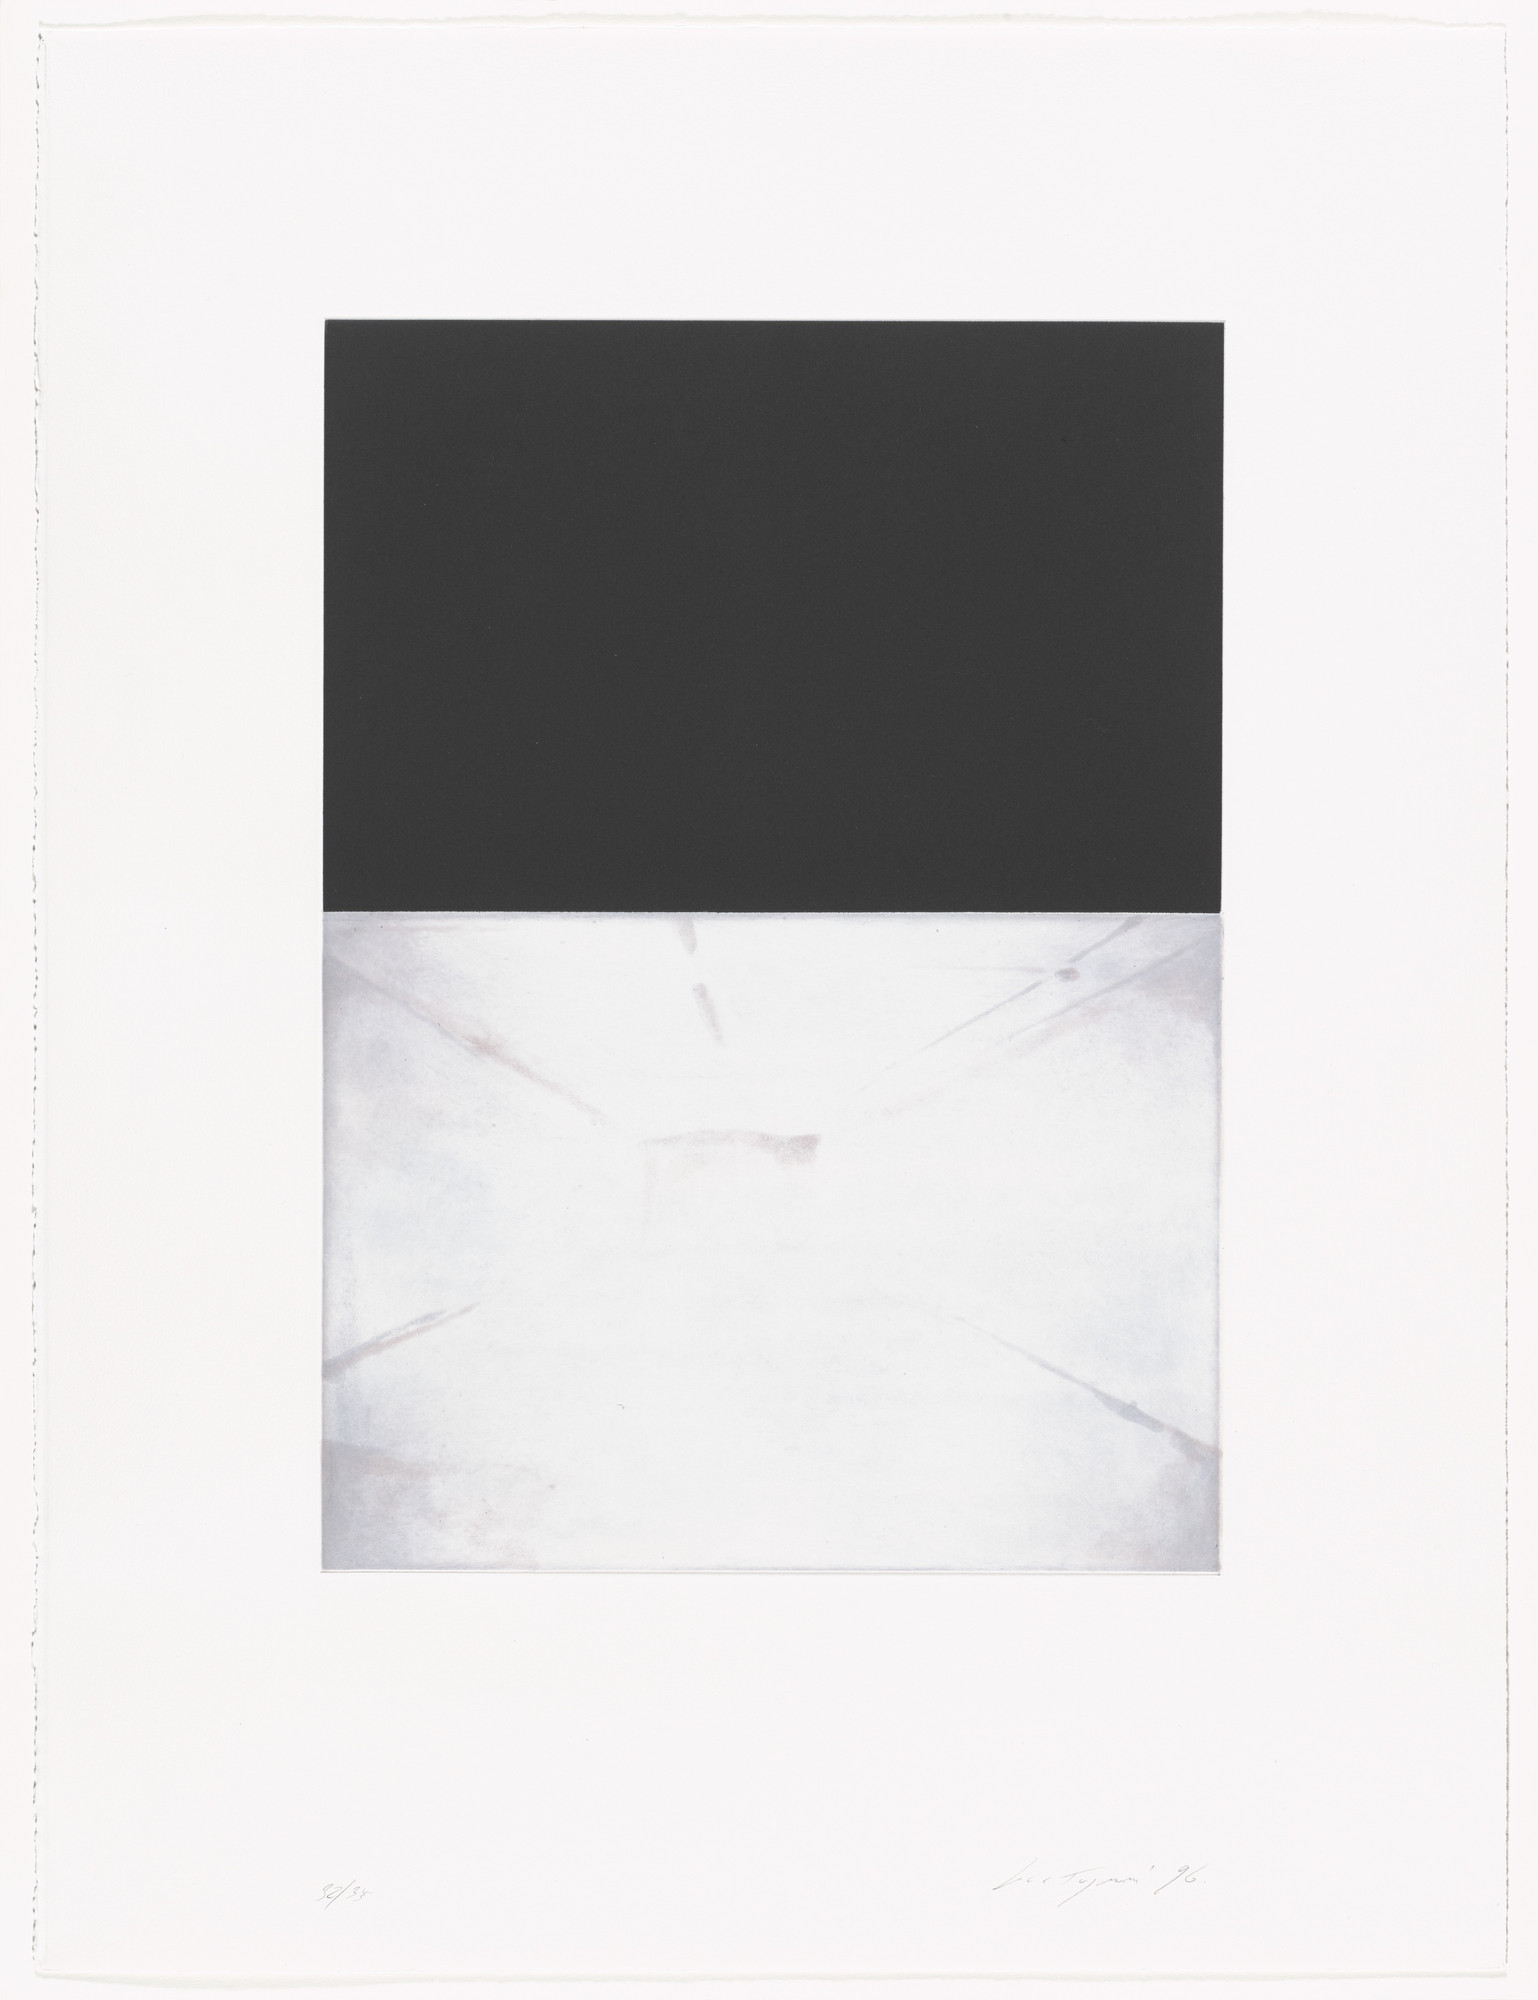 Luc Tuymans. Untitled from The Temple. 1996